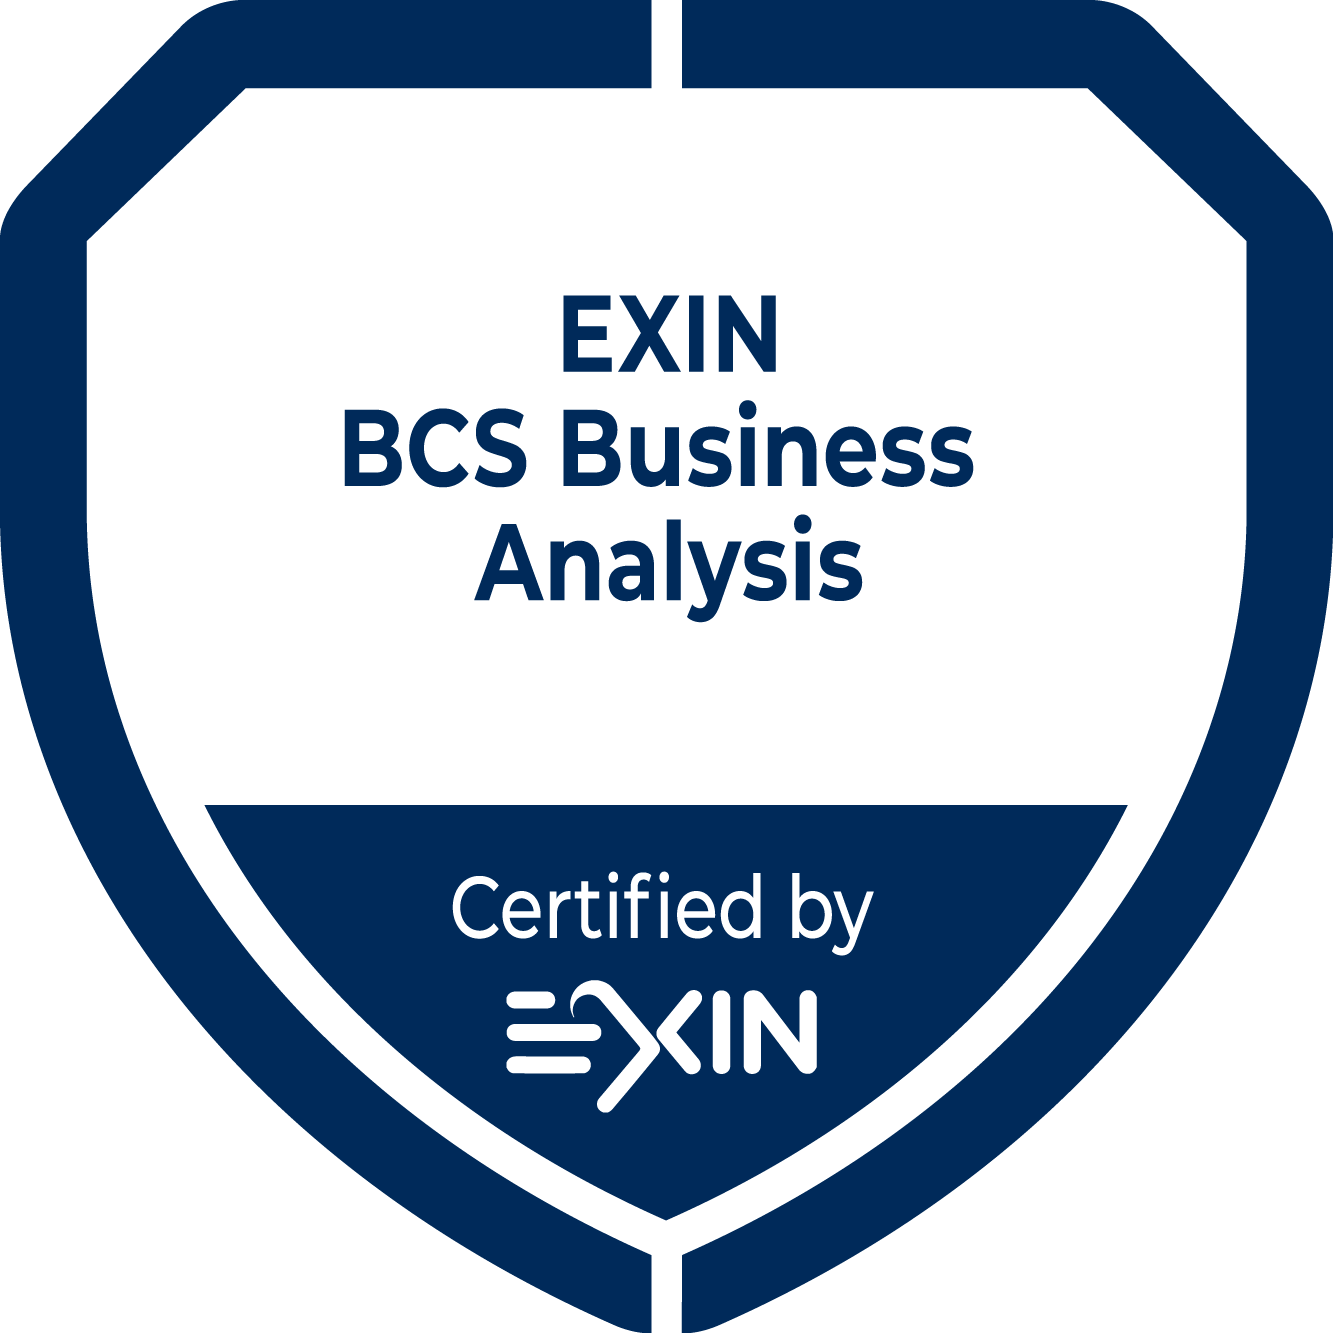 EXIN BCS Business Analysis